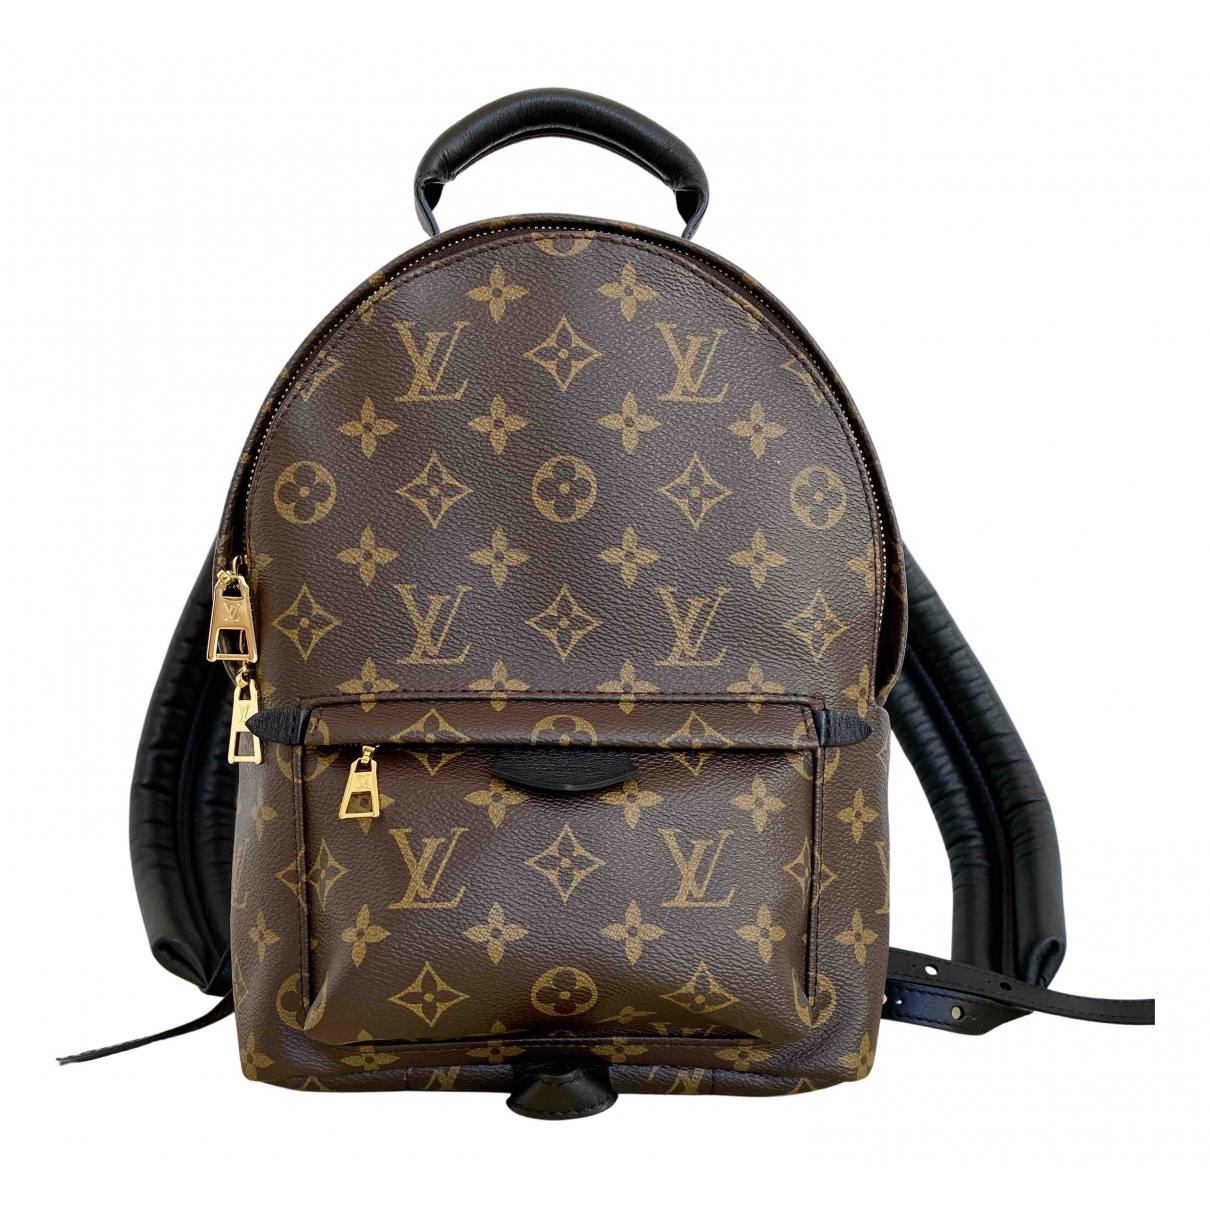 Louis Vuitton - Sac a dos Palm Springs pour femme en toile - marron